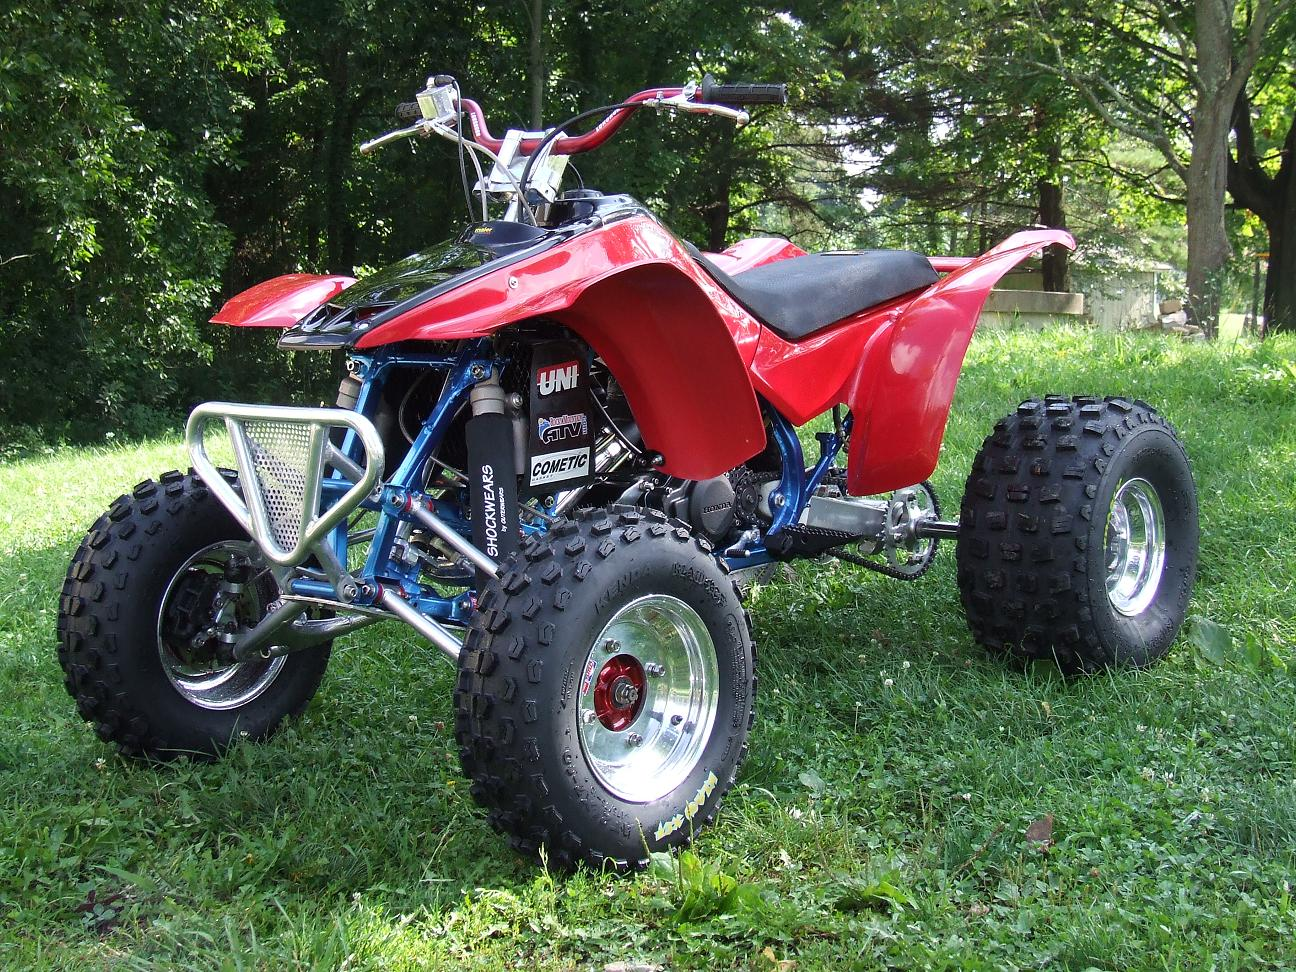 This is my 1987 Honda TRX 250R